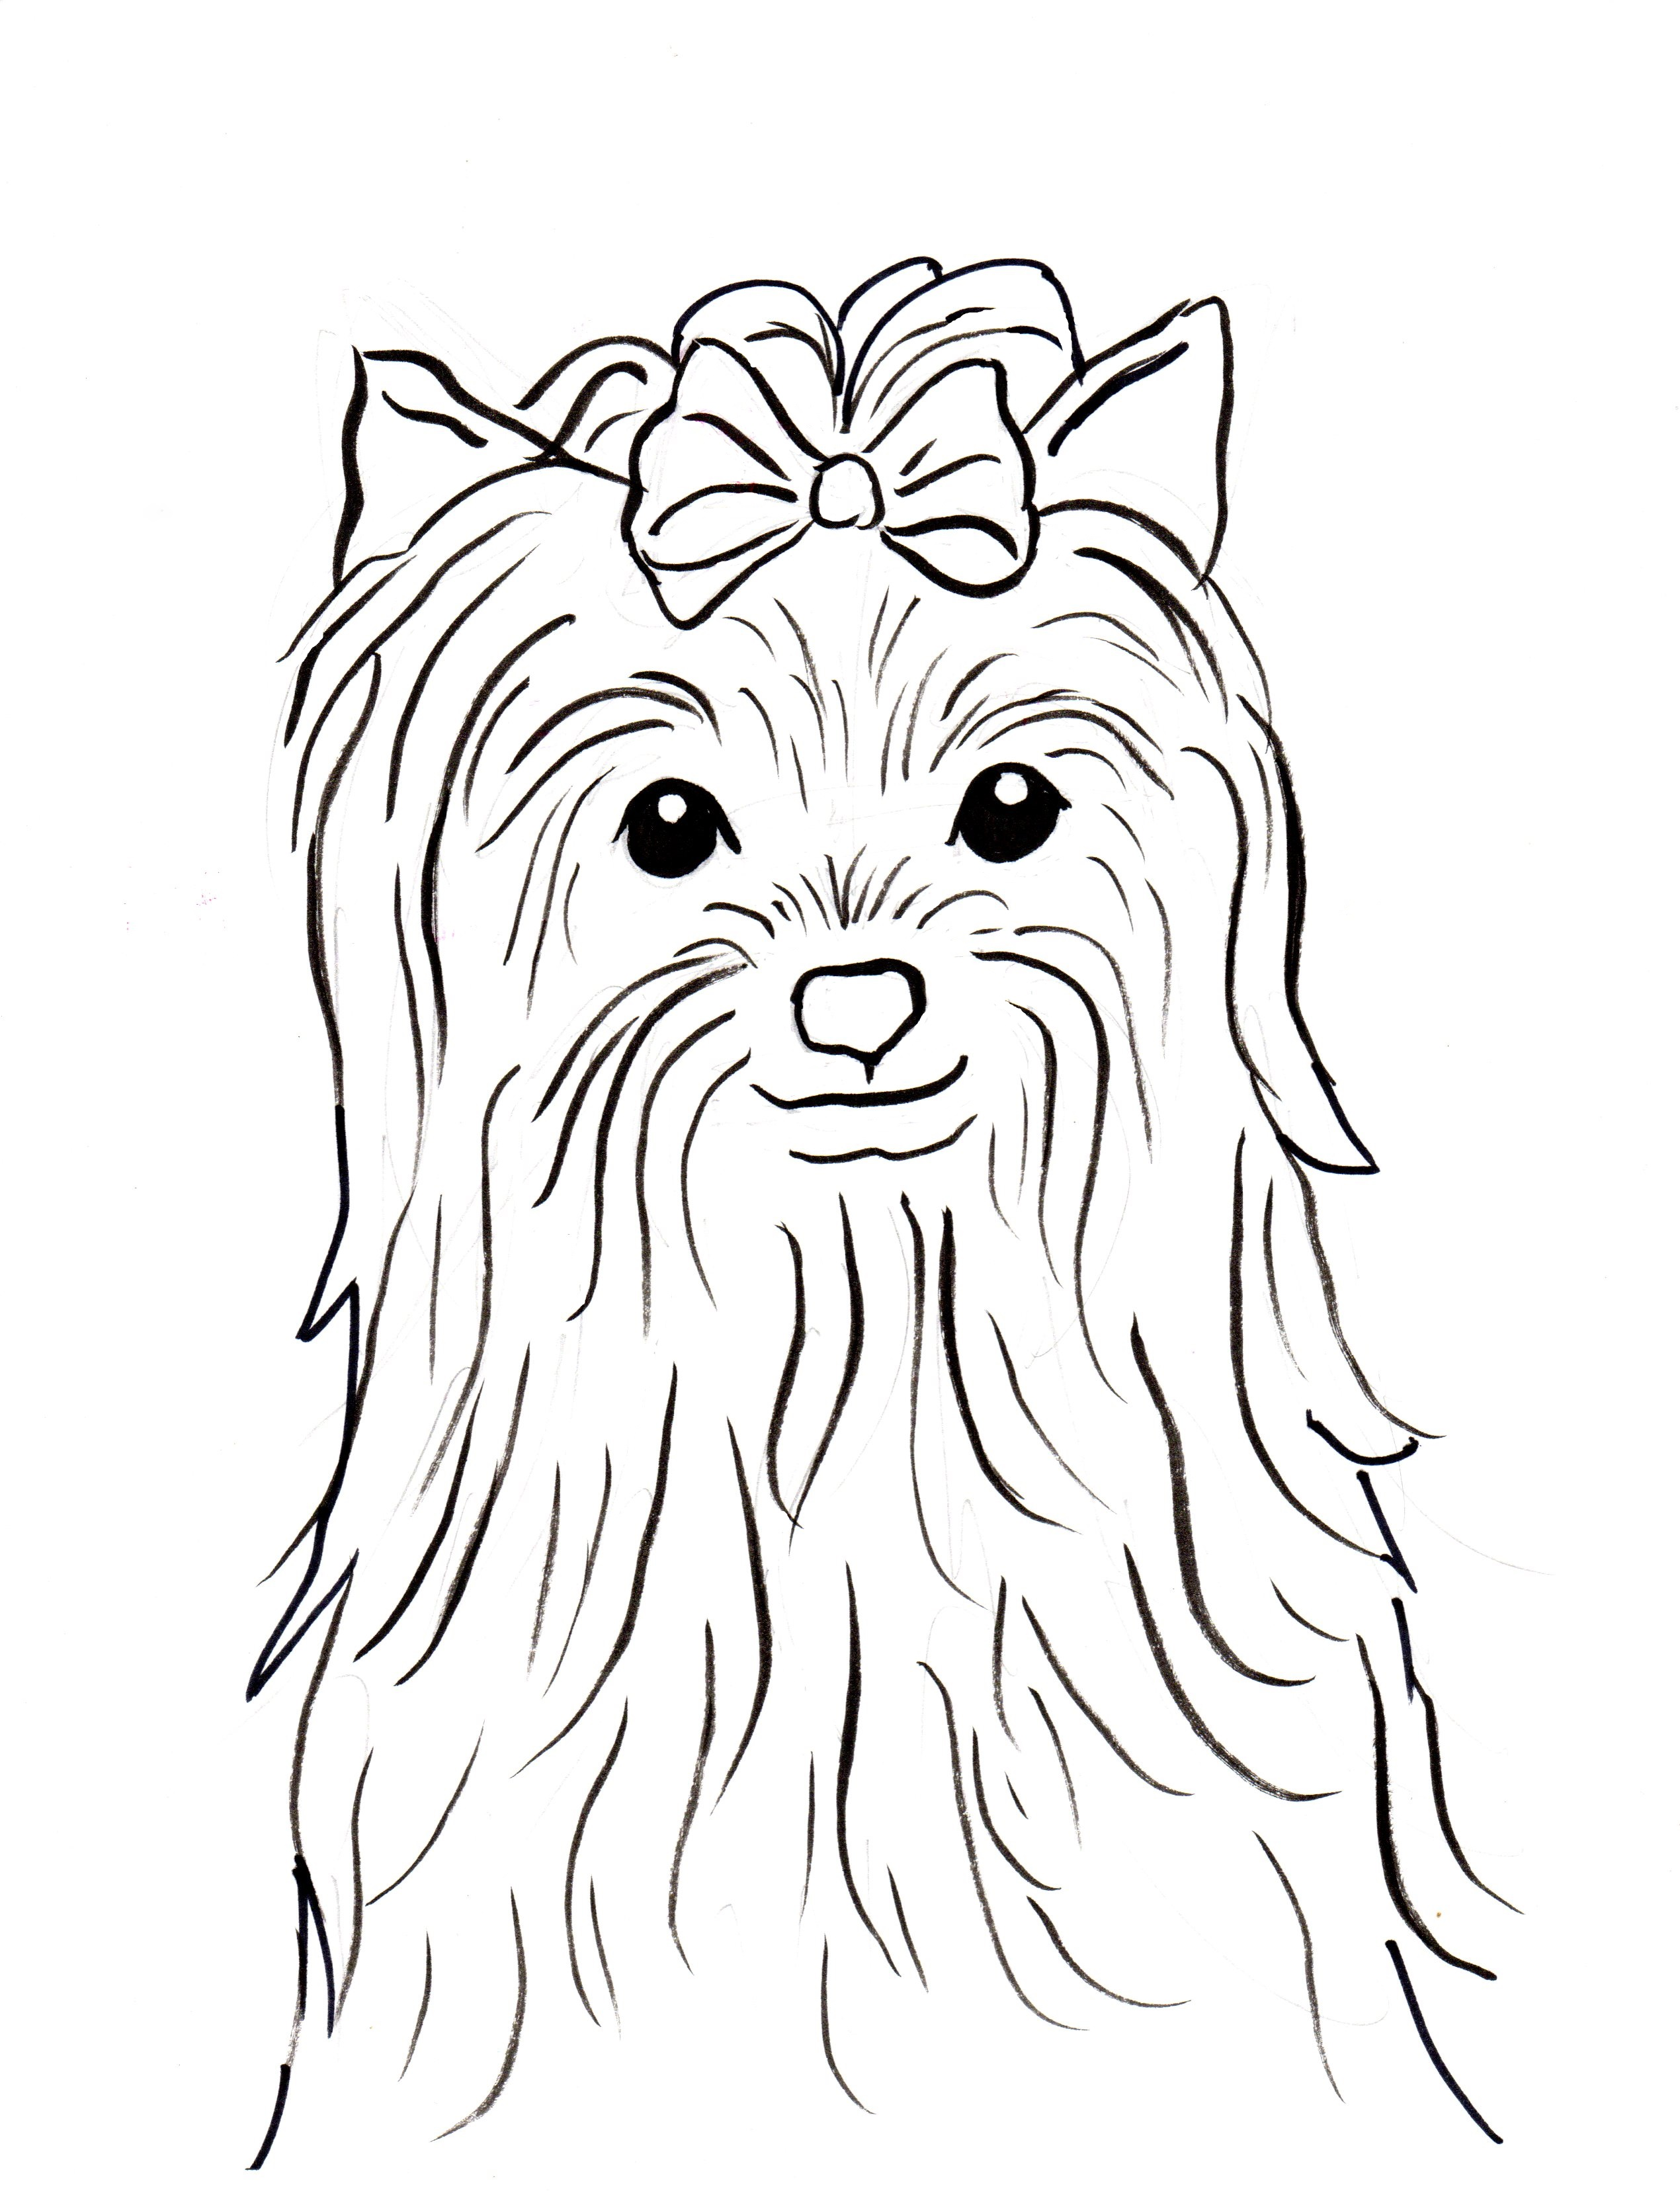 Line Drawing Of Yorkshire Terrier : Yorkshire terrier coloring page samantha bell